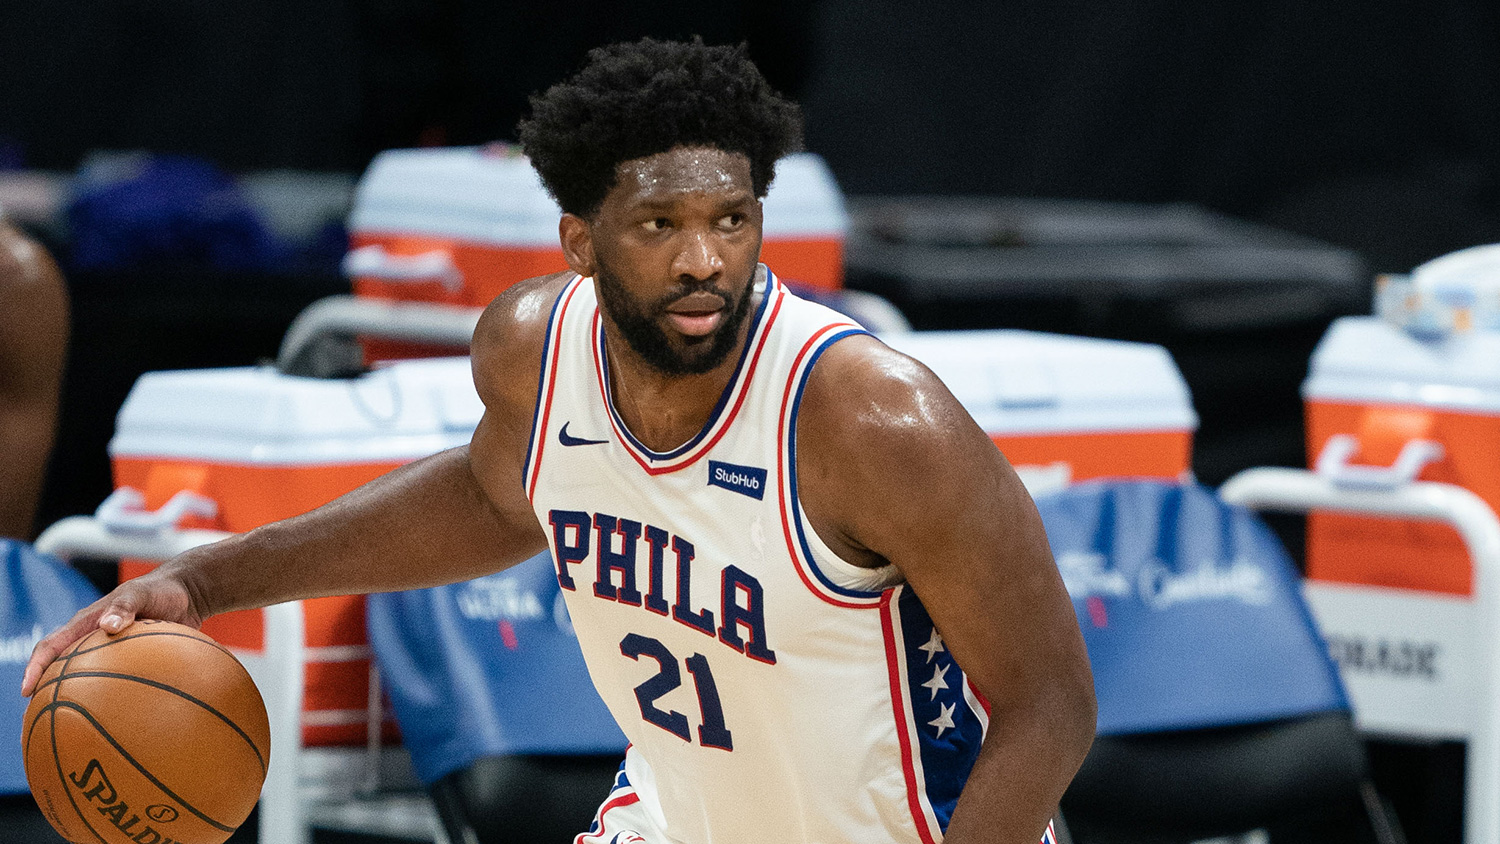 All-NBA Teams 2021: Joel Embiid makes Second Team, eligible for supermax contract extension | RSN